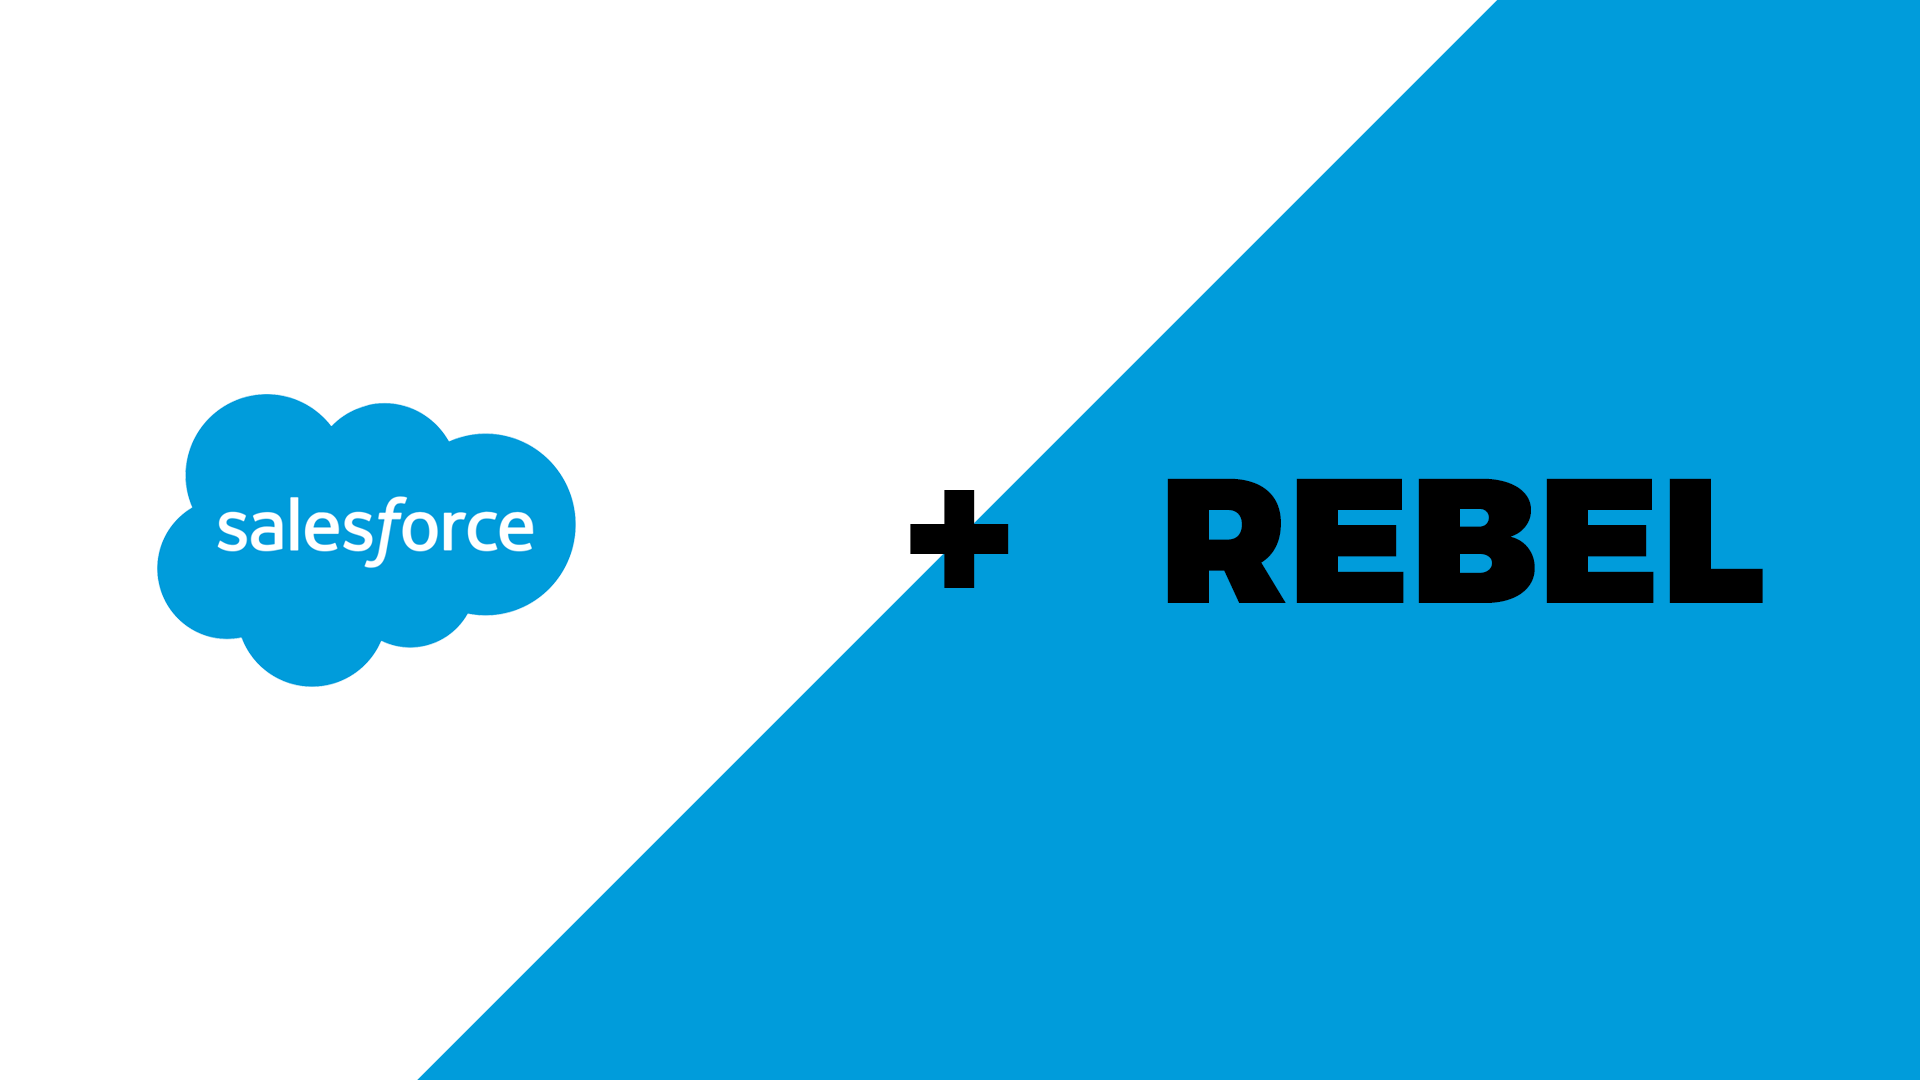 Salesforce Signs Definitive Agreement To Acquire Rebel